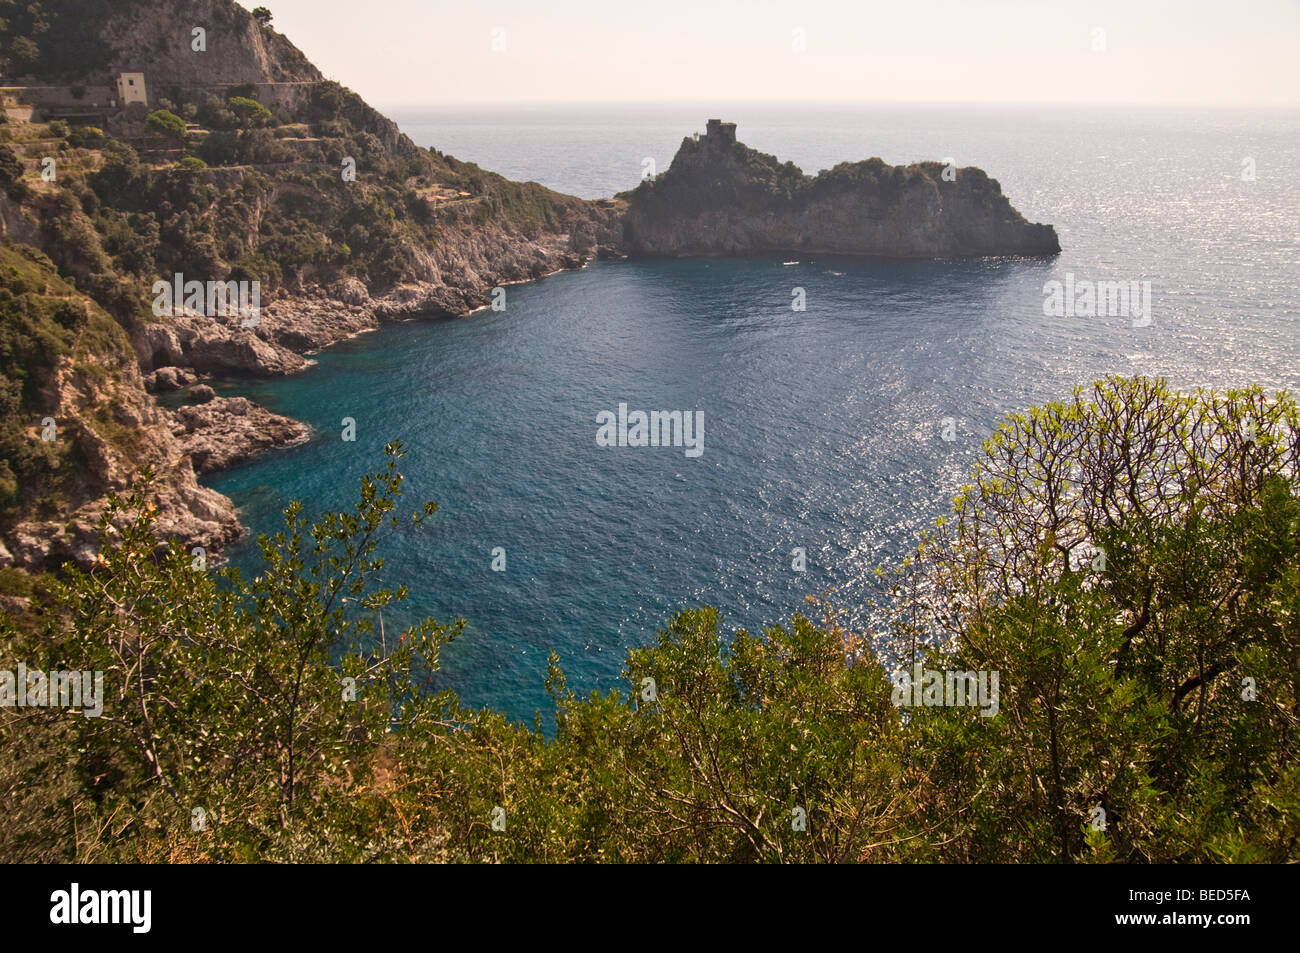 Bay near to  Conca Dei Marini , Italy - Stock Image